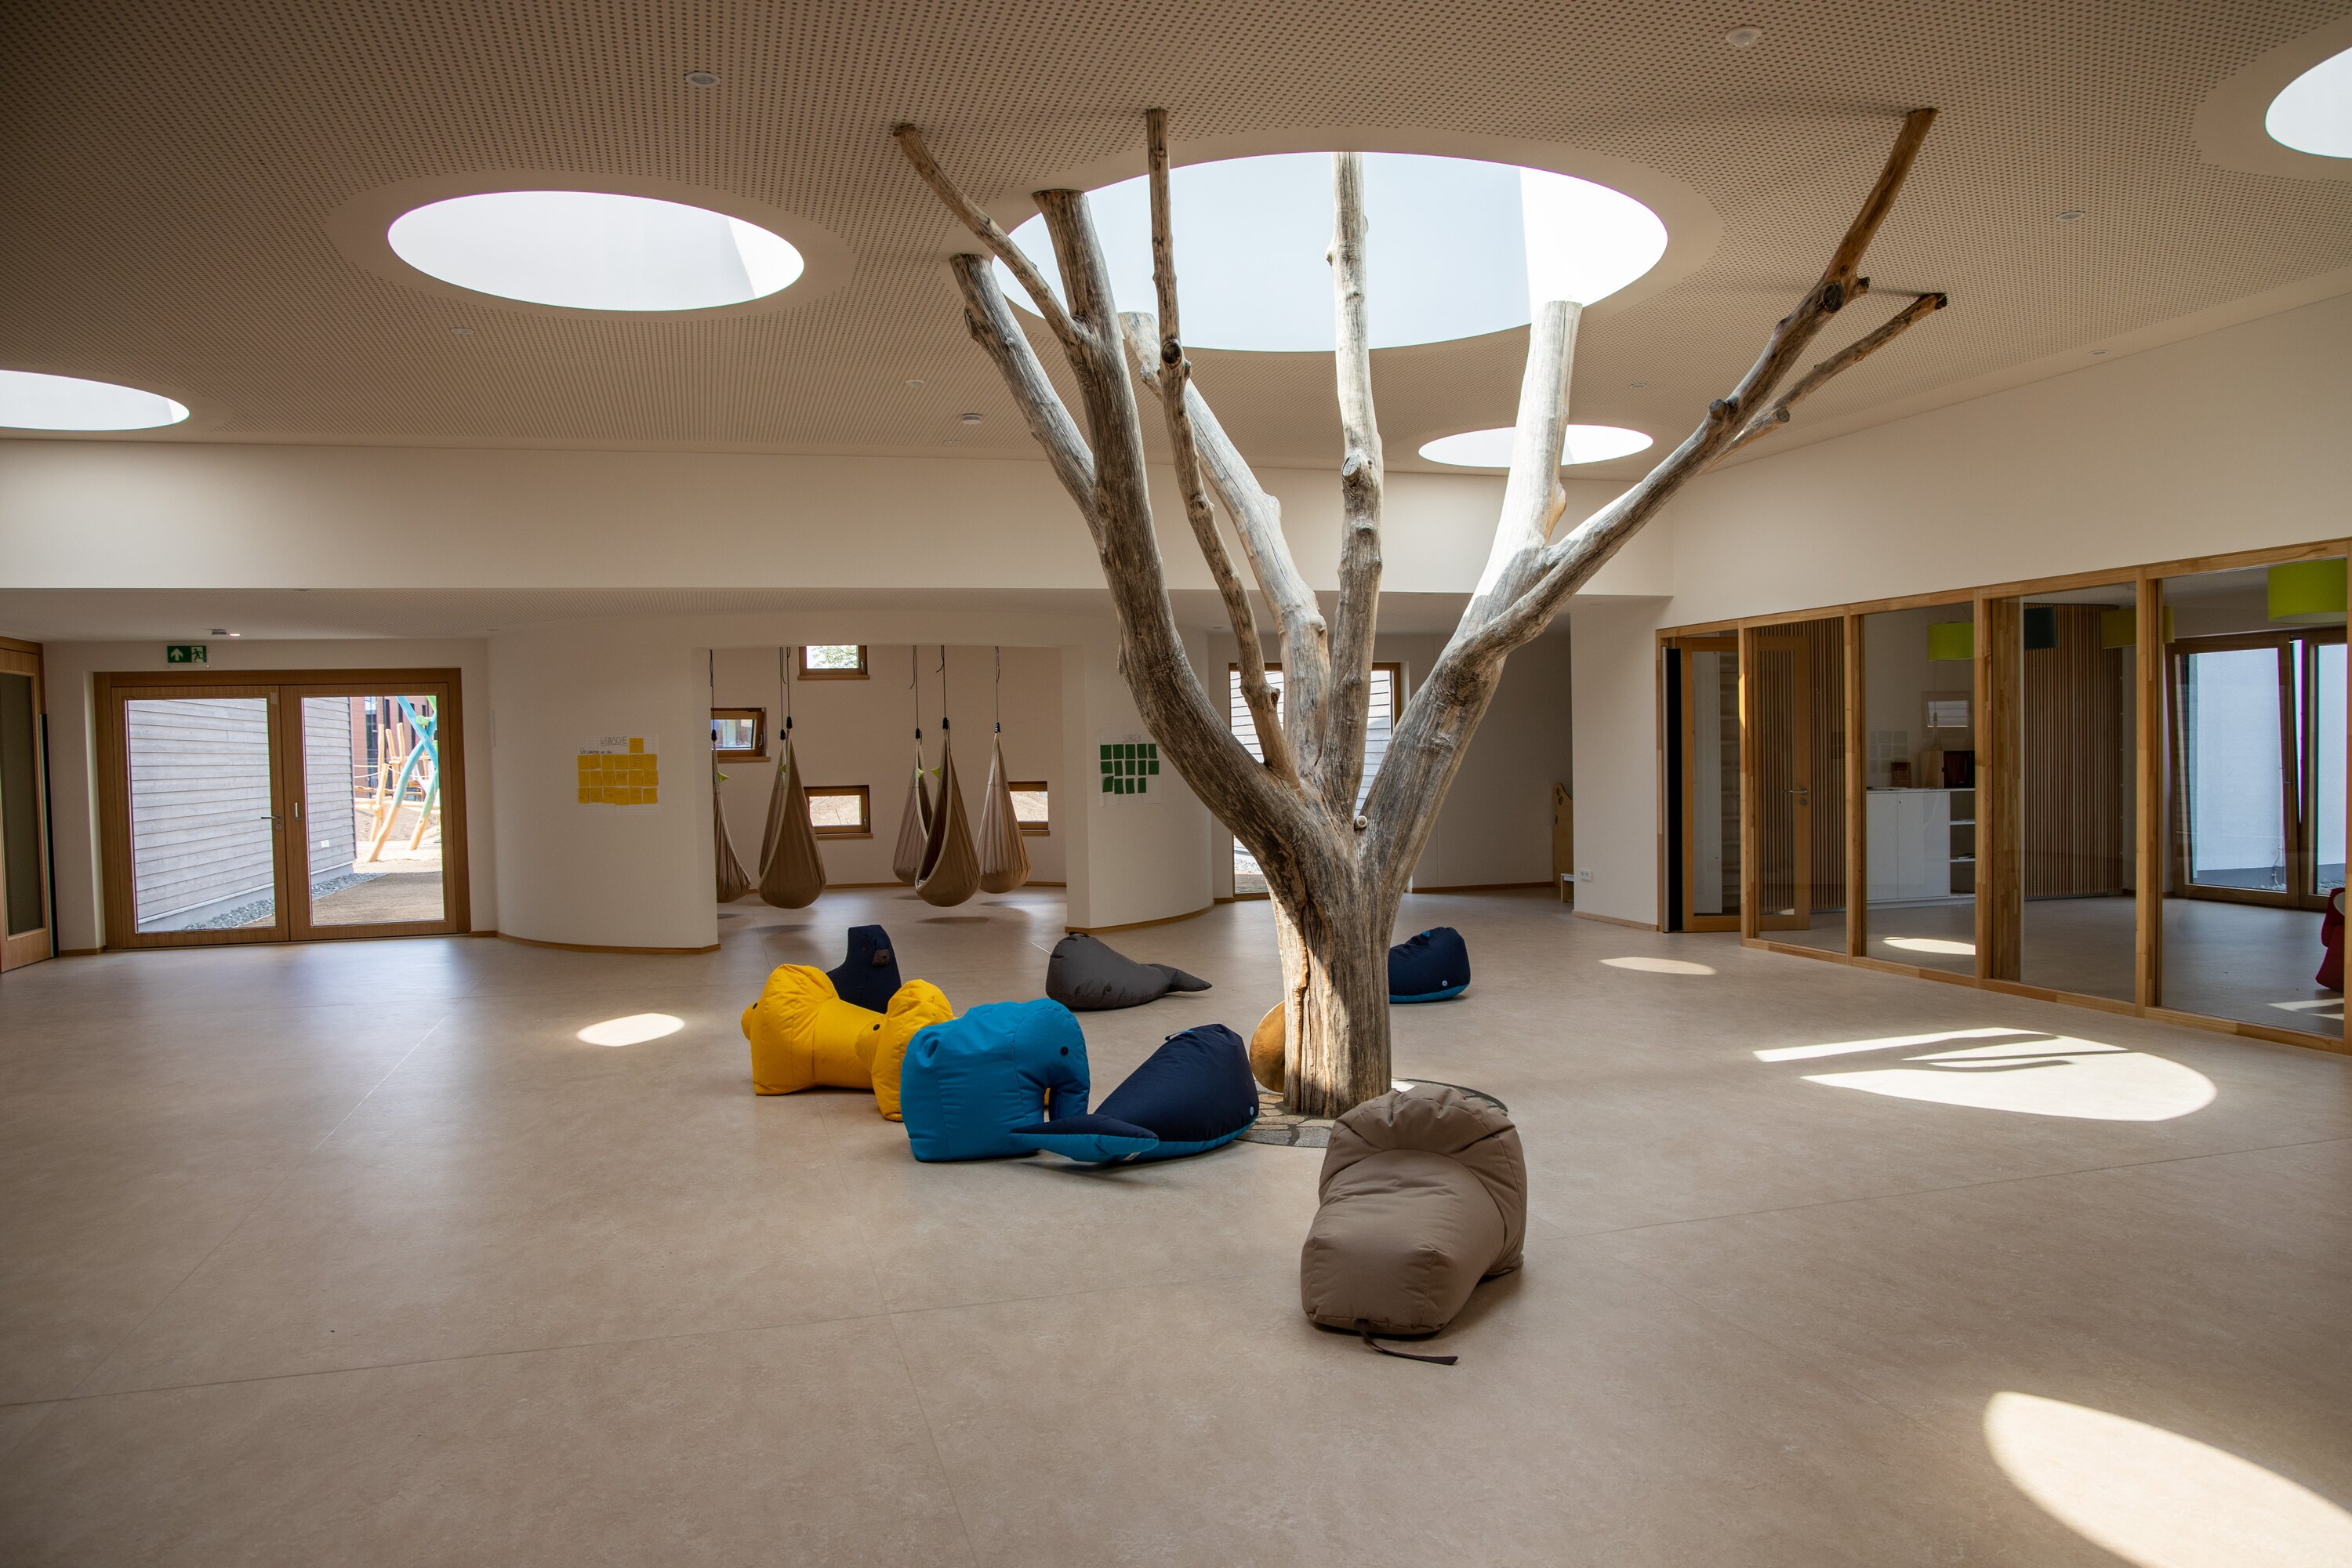 Special day care centre concept promotes health, mindfulness and closeness to nature